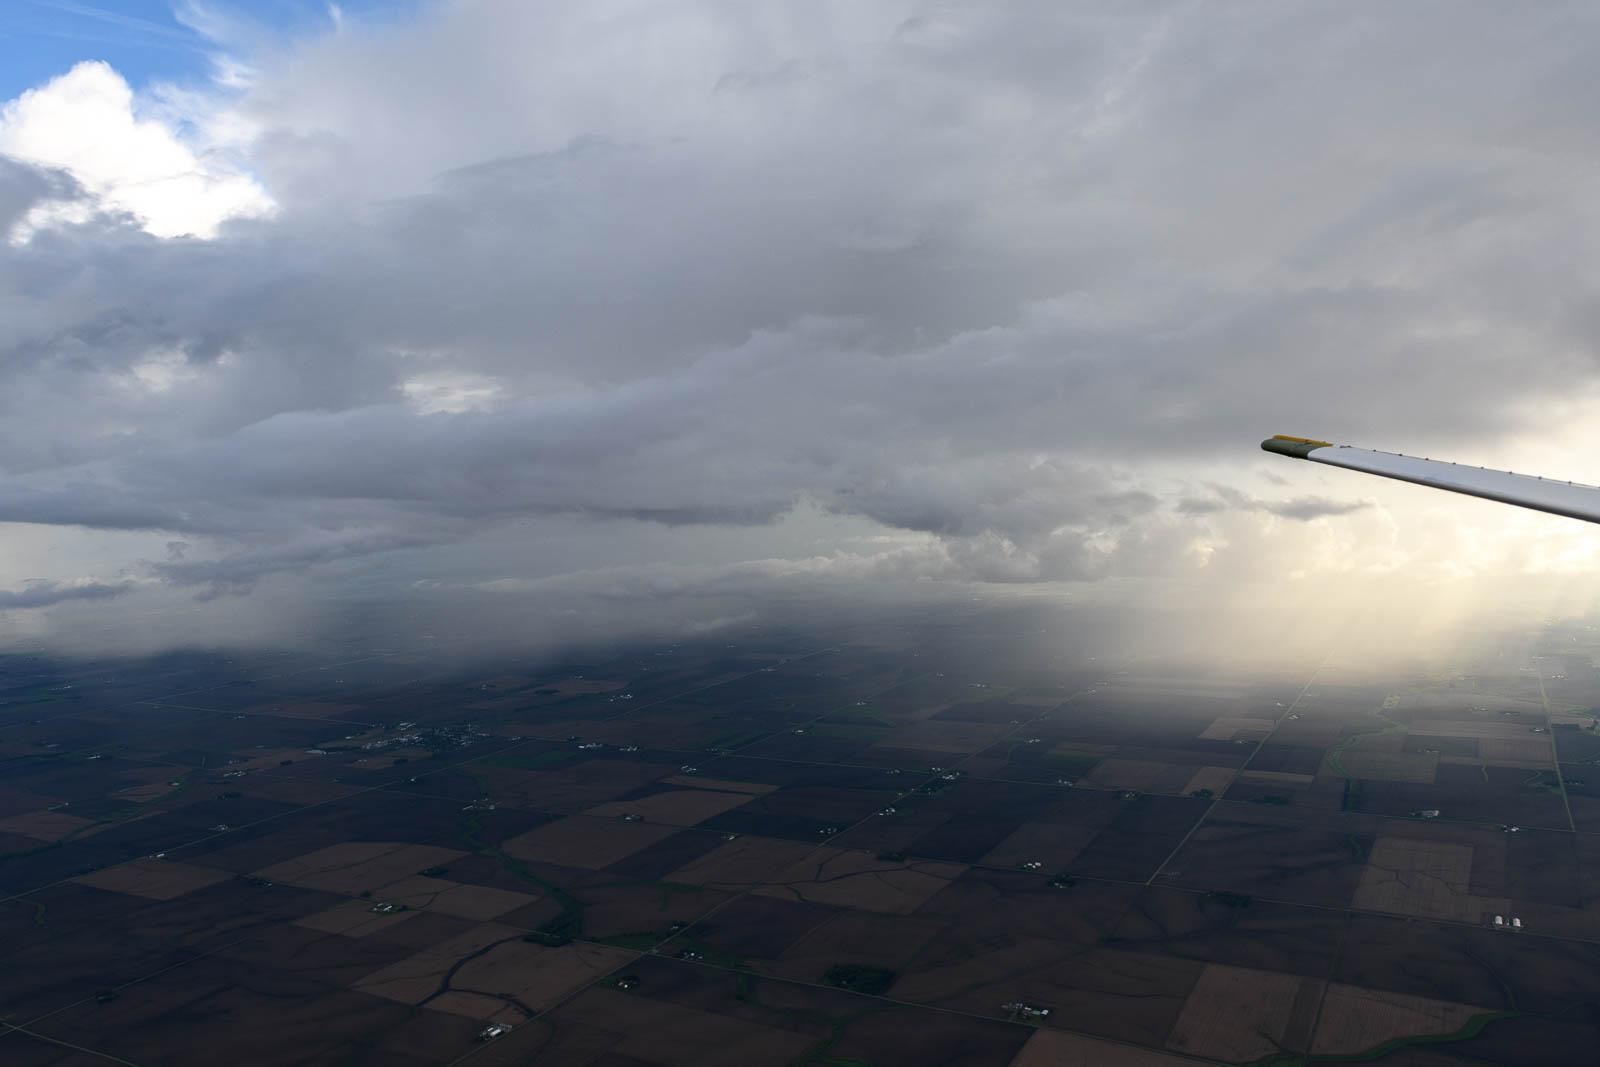 Flying around some storms